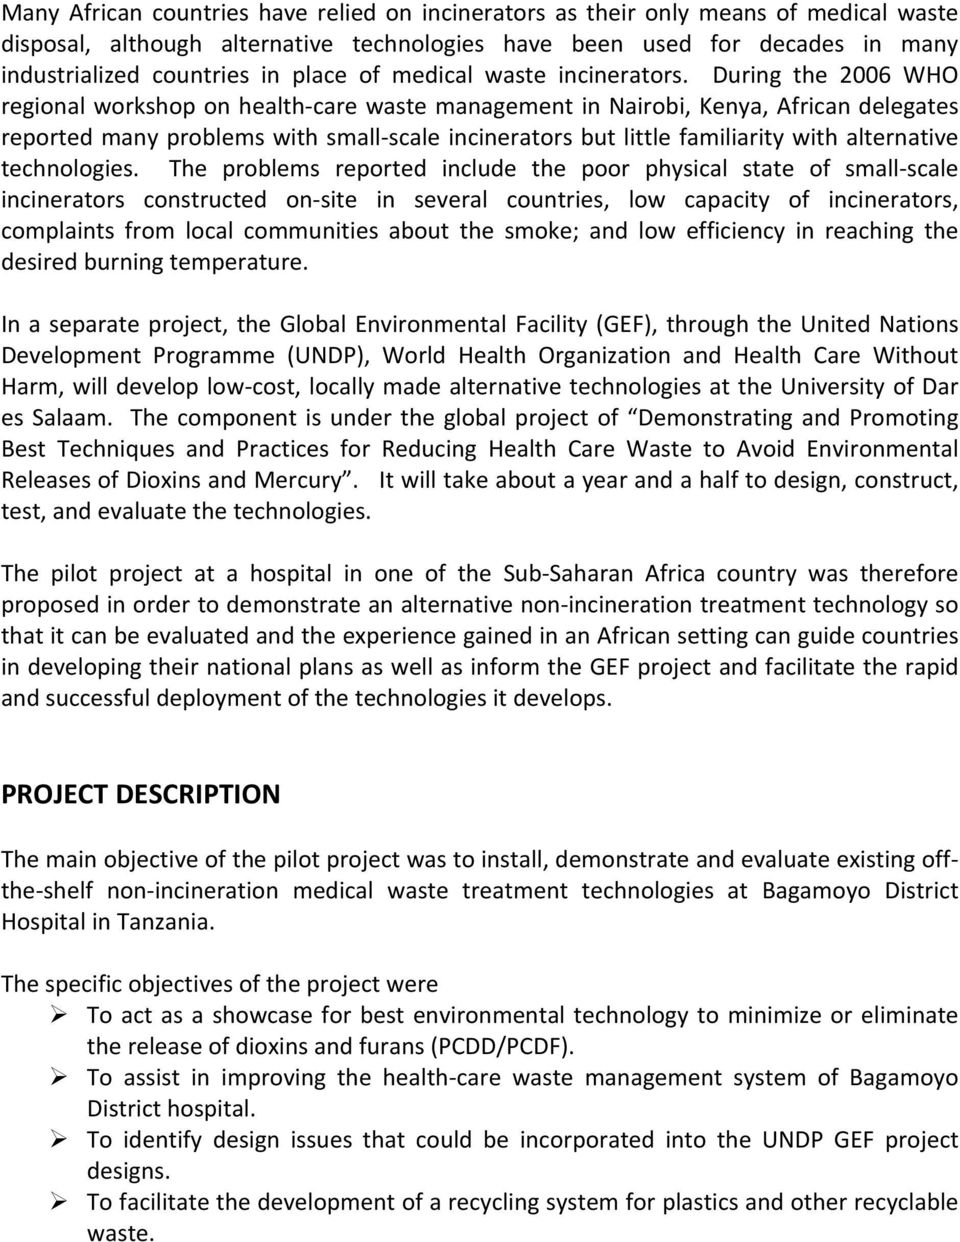 Non Incineration Medical Waste Treatment Pilot Project at